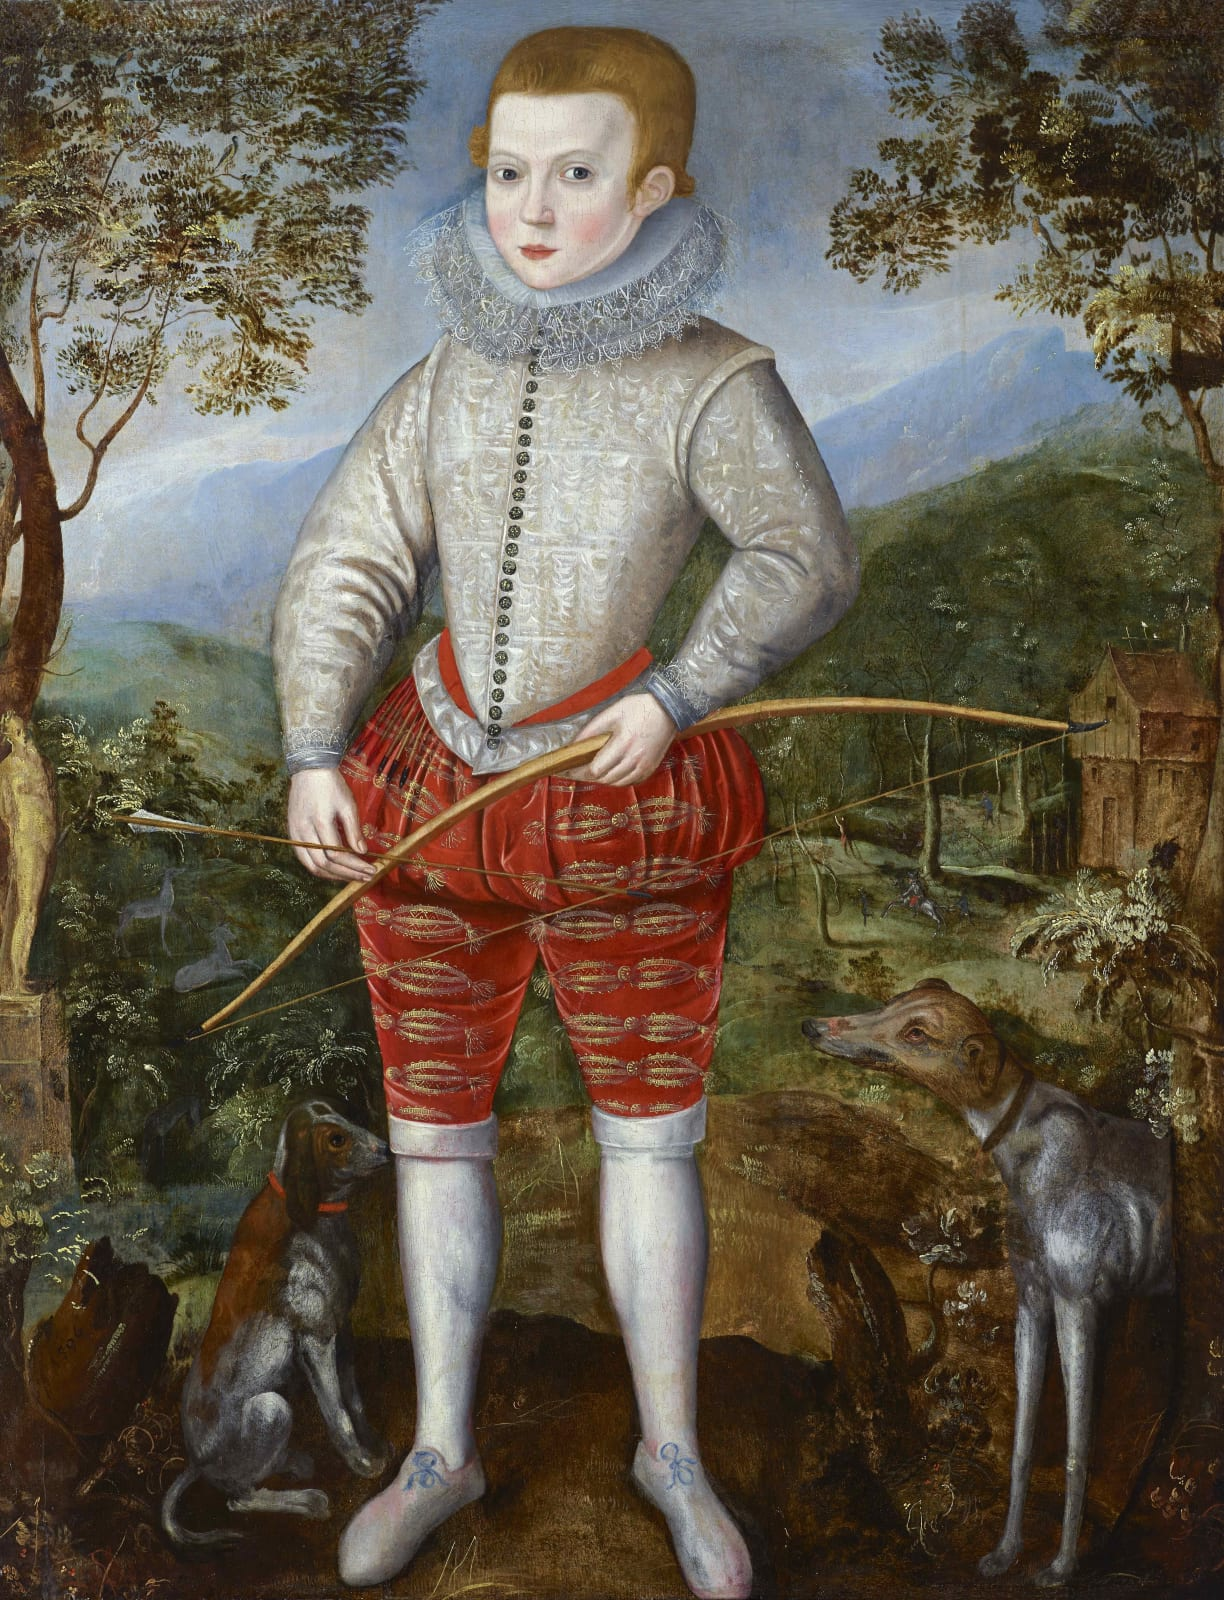 An unknown boy, possibly of the Duncombe family of Battlesden Park, Great Brickhill, Bedfordshire, holding a bow and arrow, in a landscape